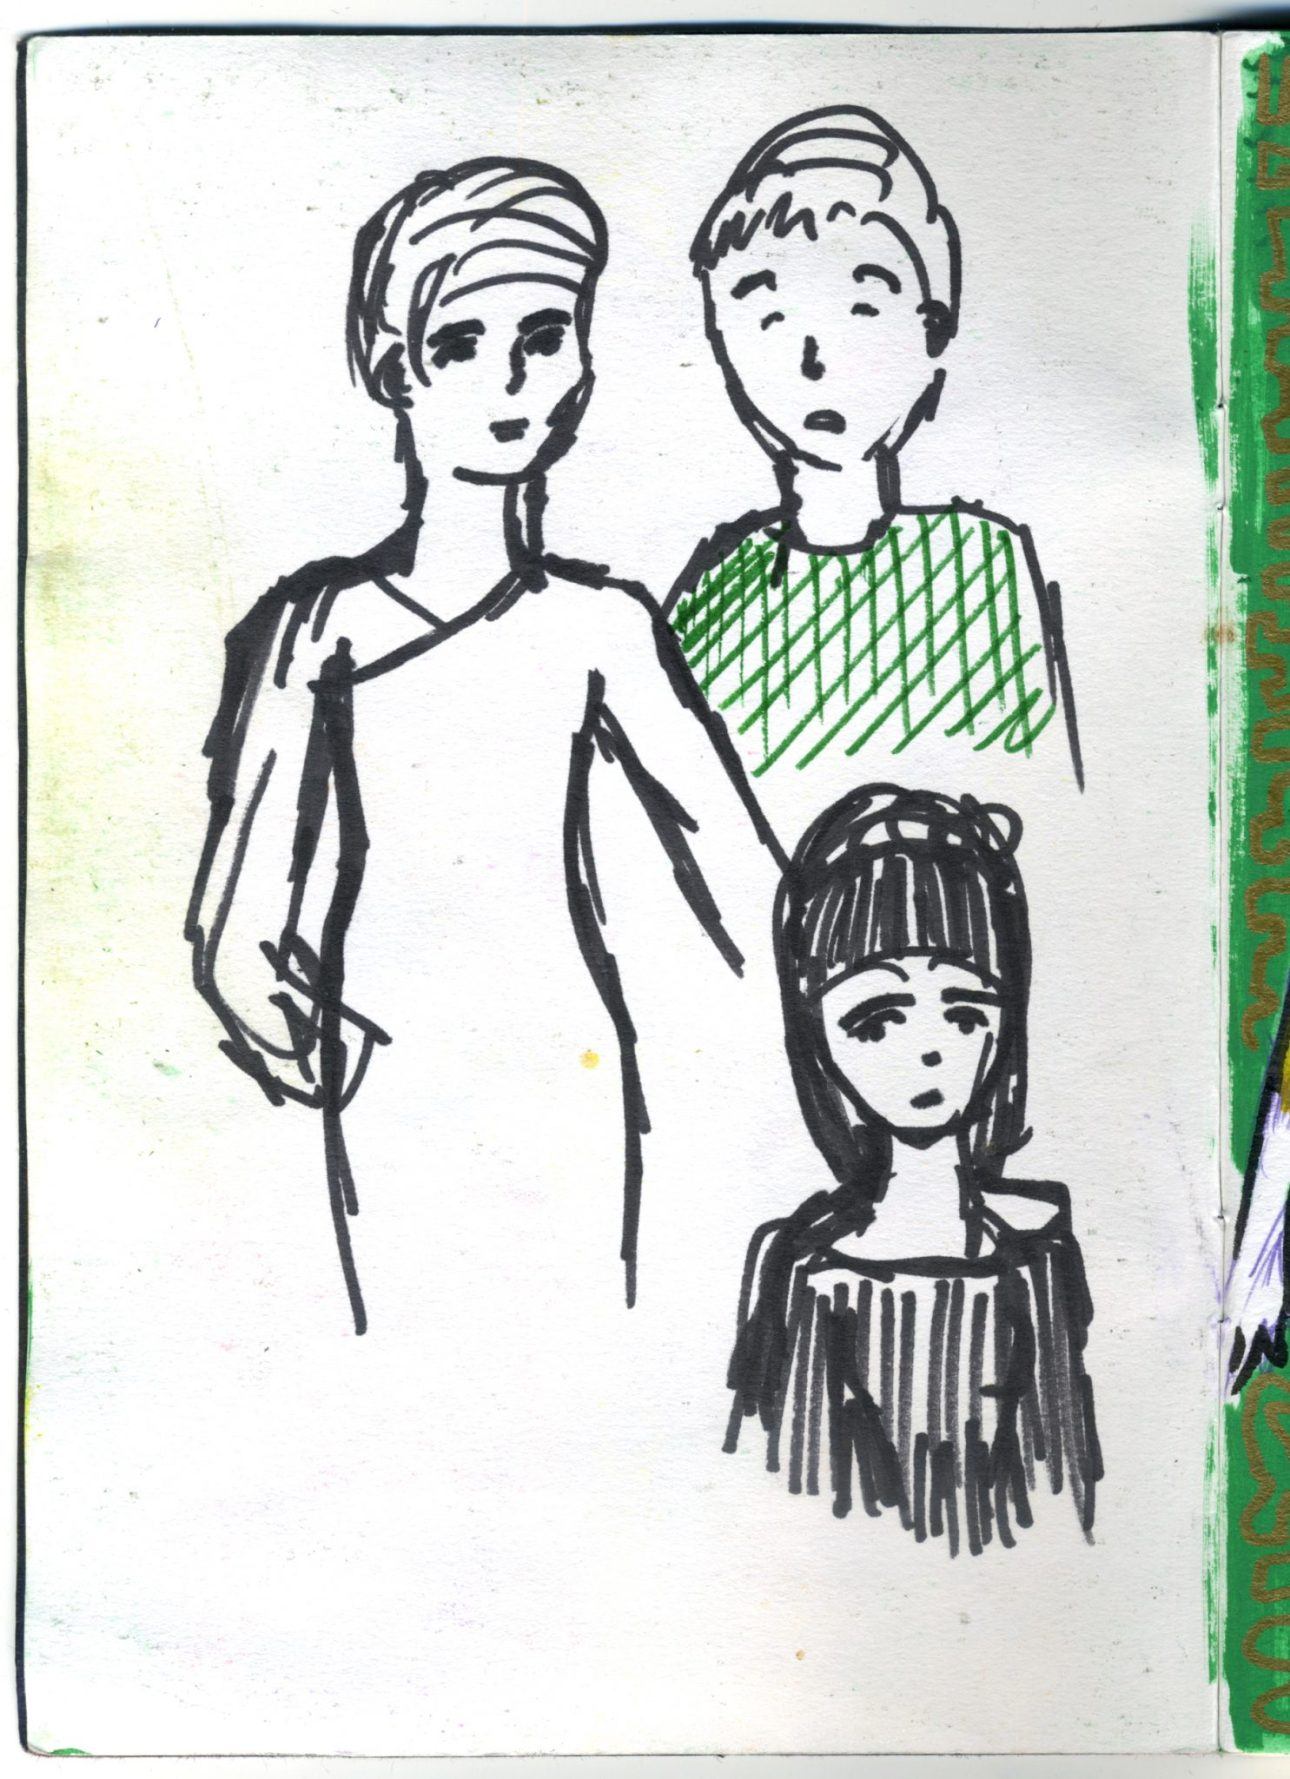 A brush pen sketch of three figures with different hairstyles.